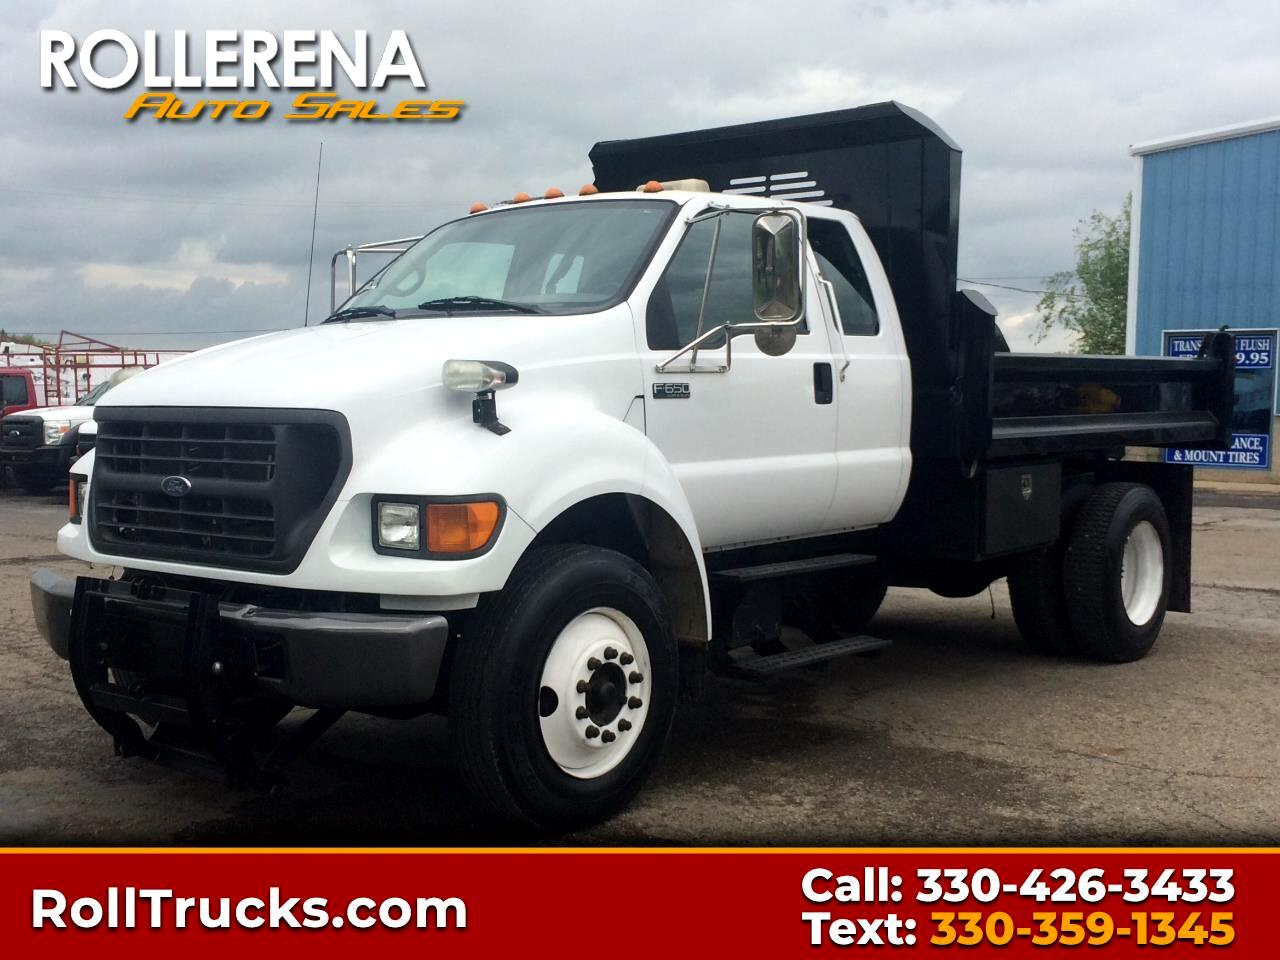 2001 Ford Super Duty F-650 Dump Truck